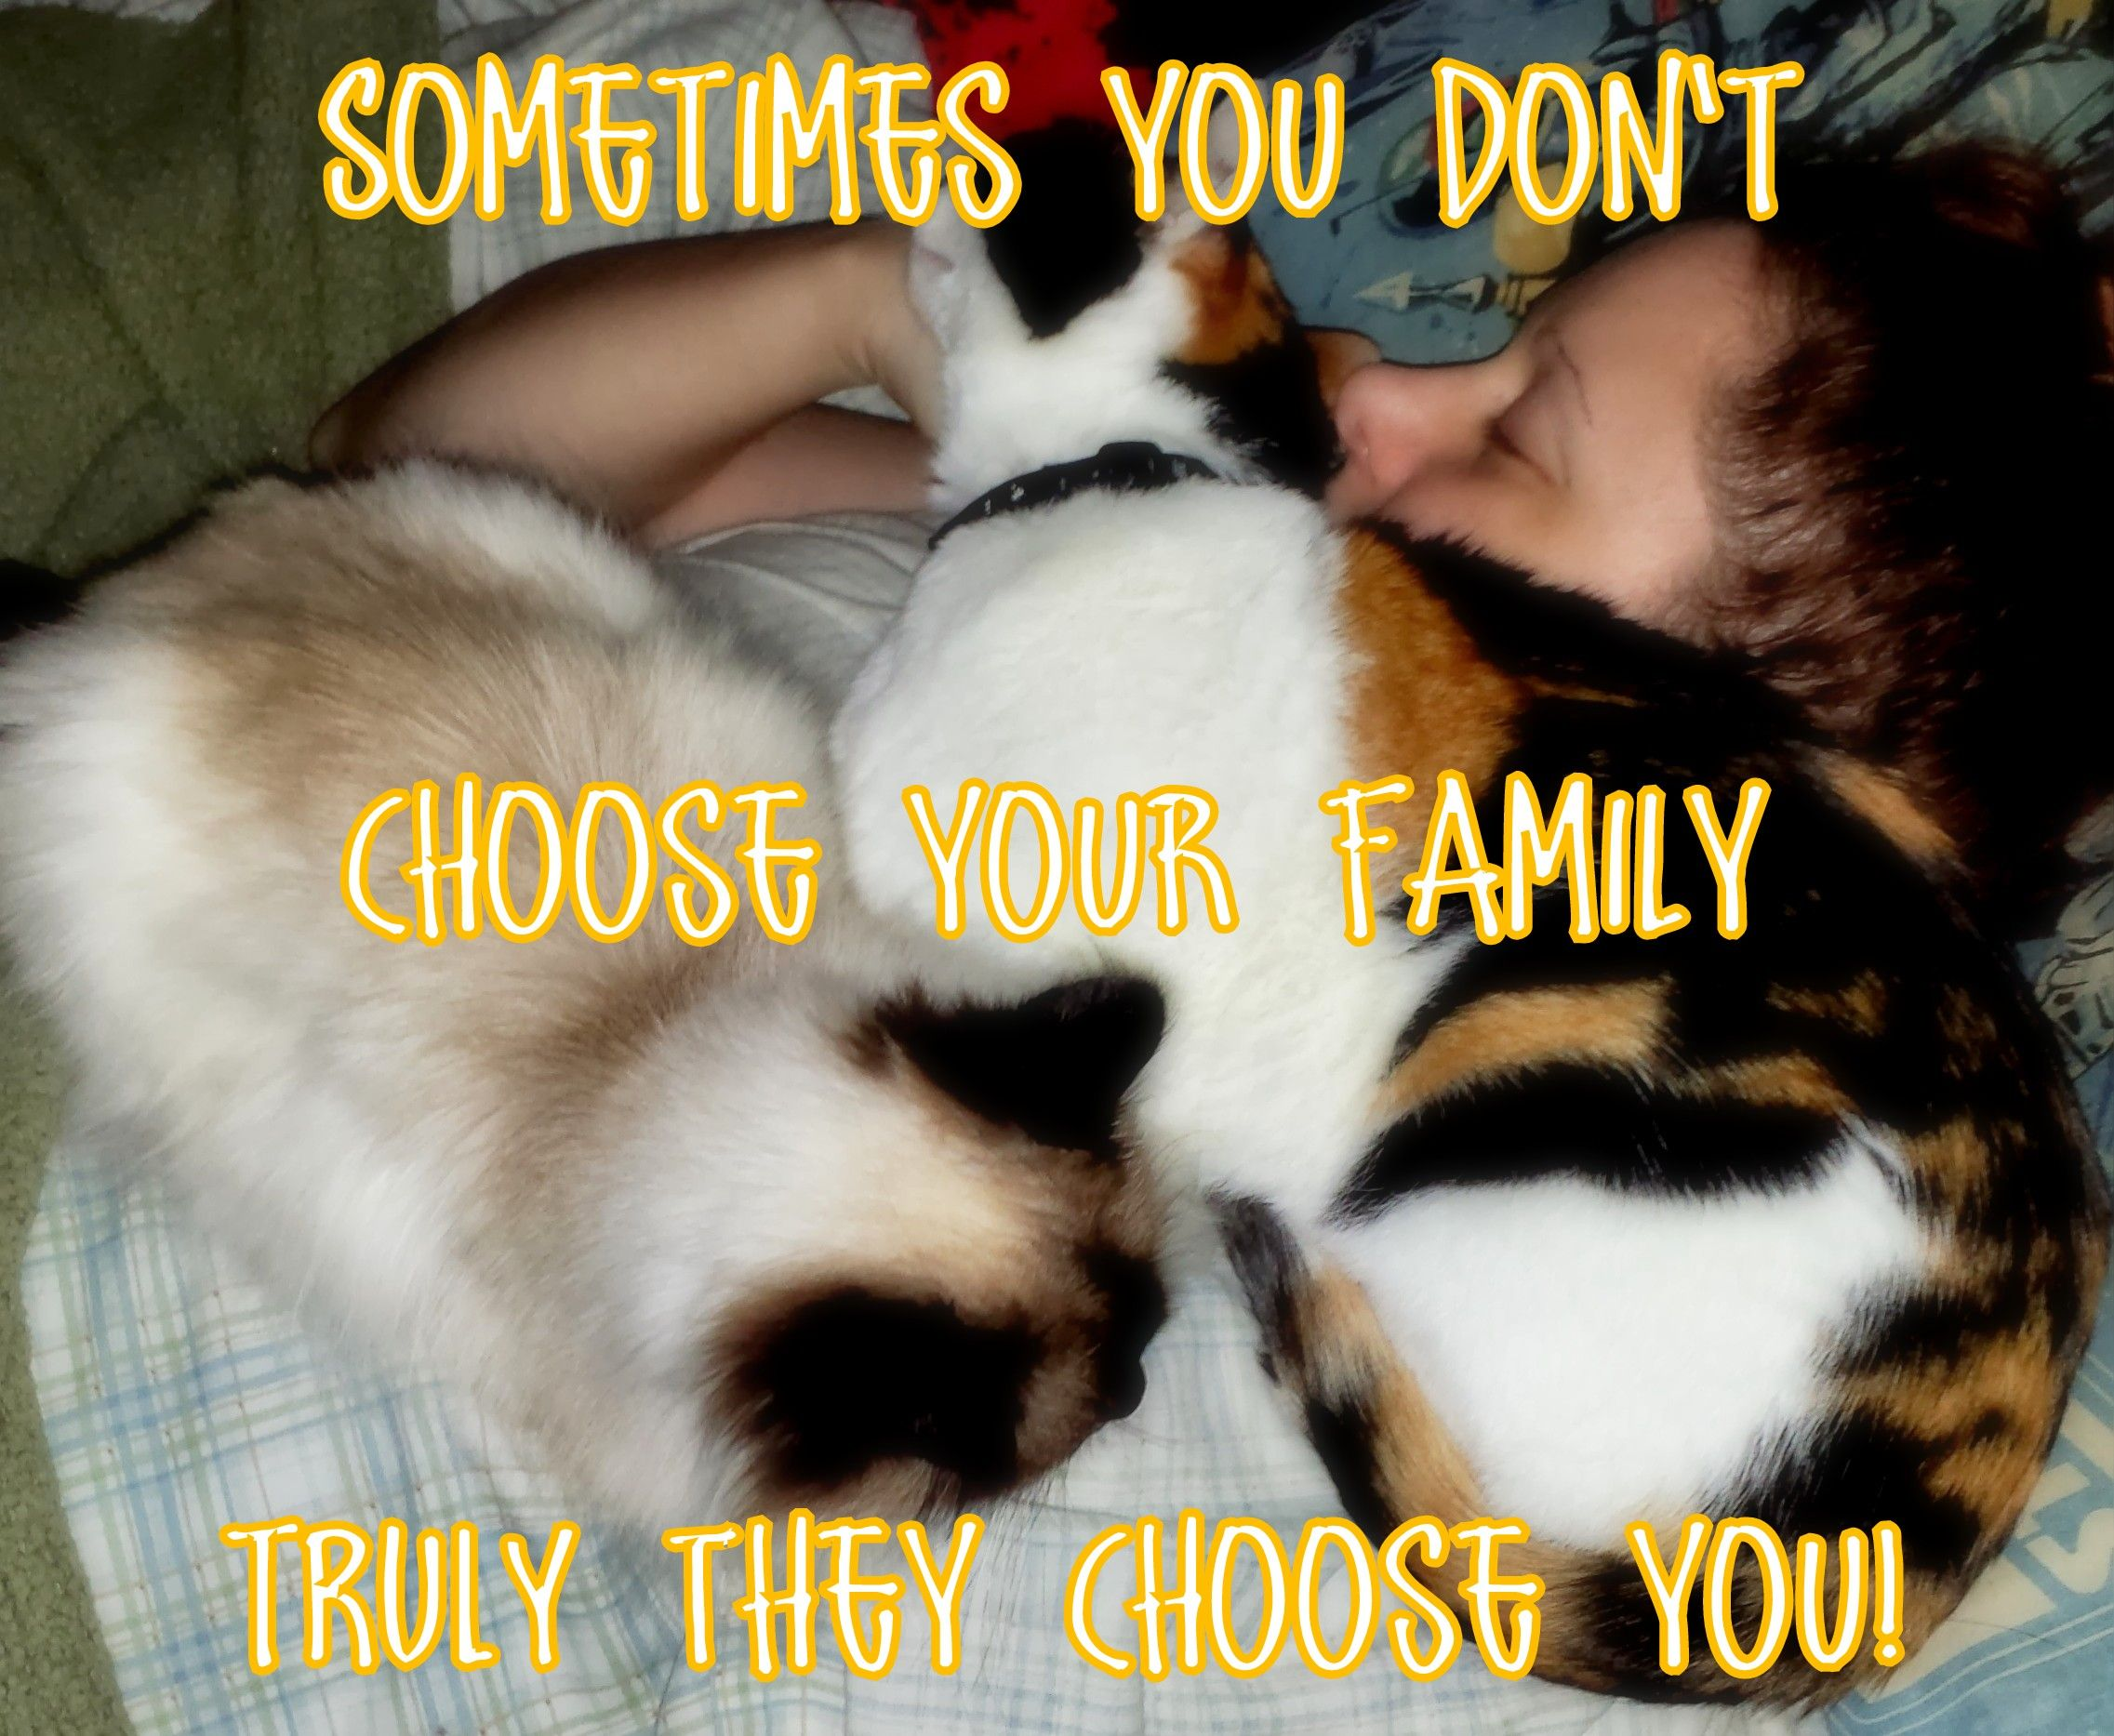 """""""Sometimes you don't choose your family truly they choose you!"""" Photo of me & my Cindle (RIP) & Bonney laying on top of me in bed. -- cats, cat, feline, kitties, kitty, laying, snuggle, cuddle, embrace, love, loving, bond, pet parent, cat lover, family, connected, bonded, saying, quote,  photo, meme."""